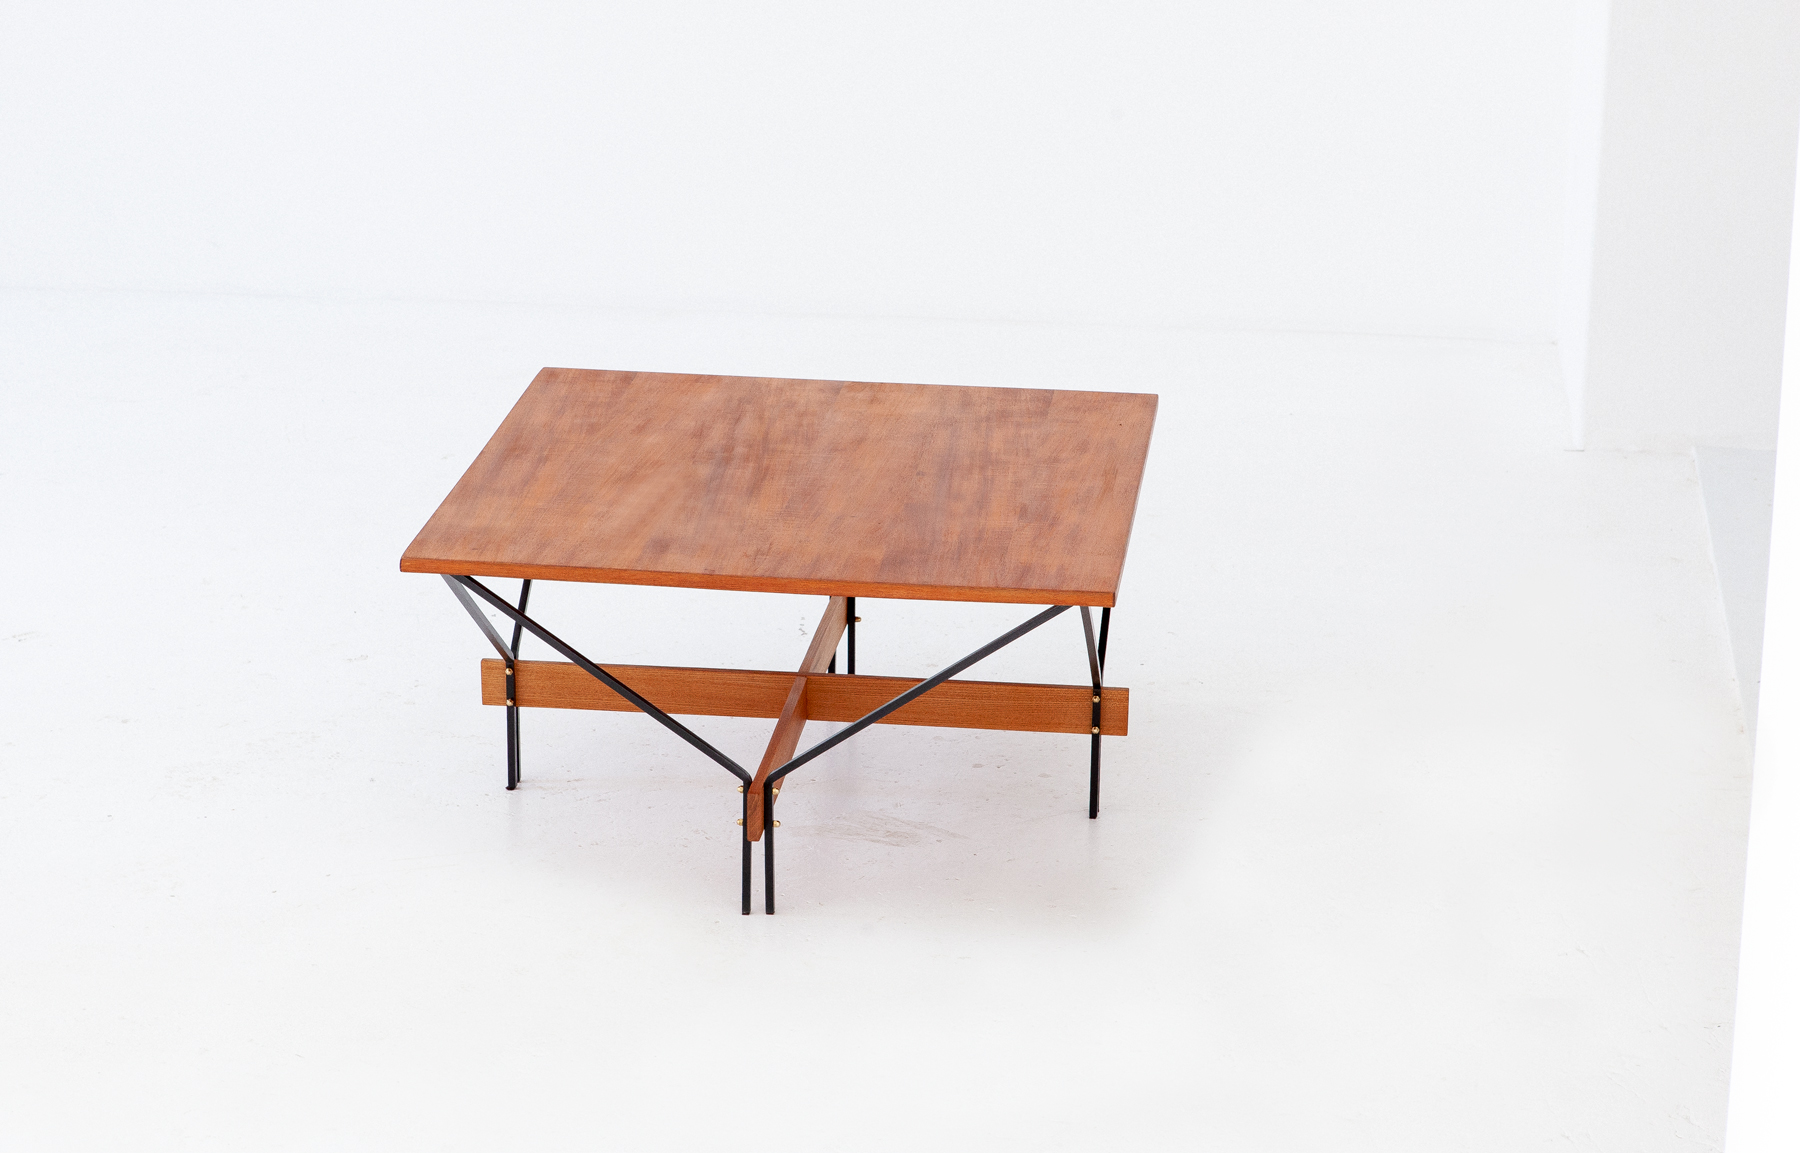 T78-retro4m-teak-black-iron-square-cofee-table-1-4